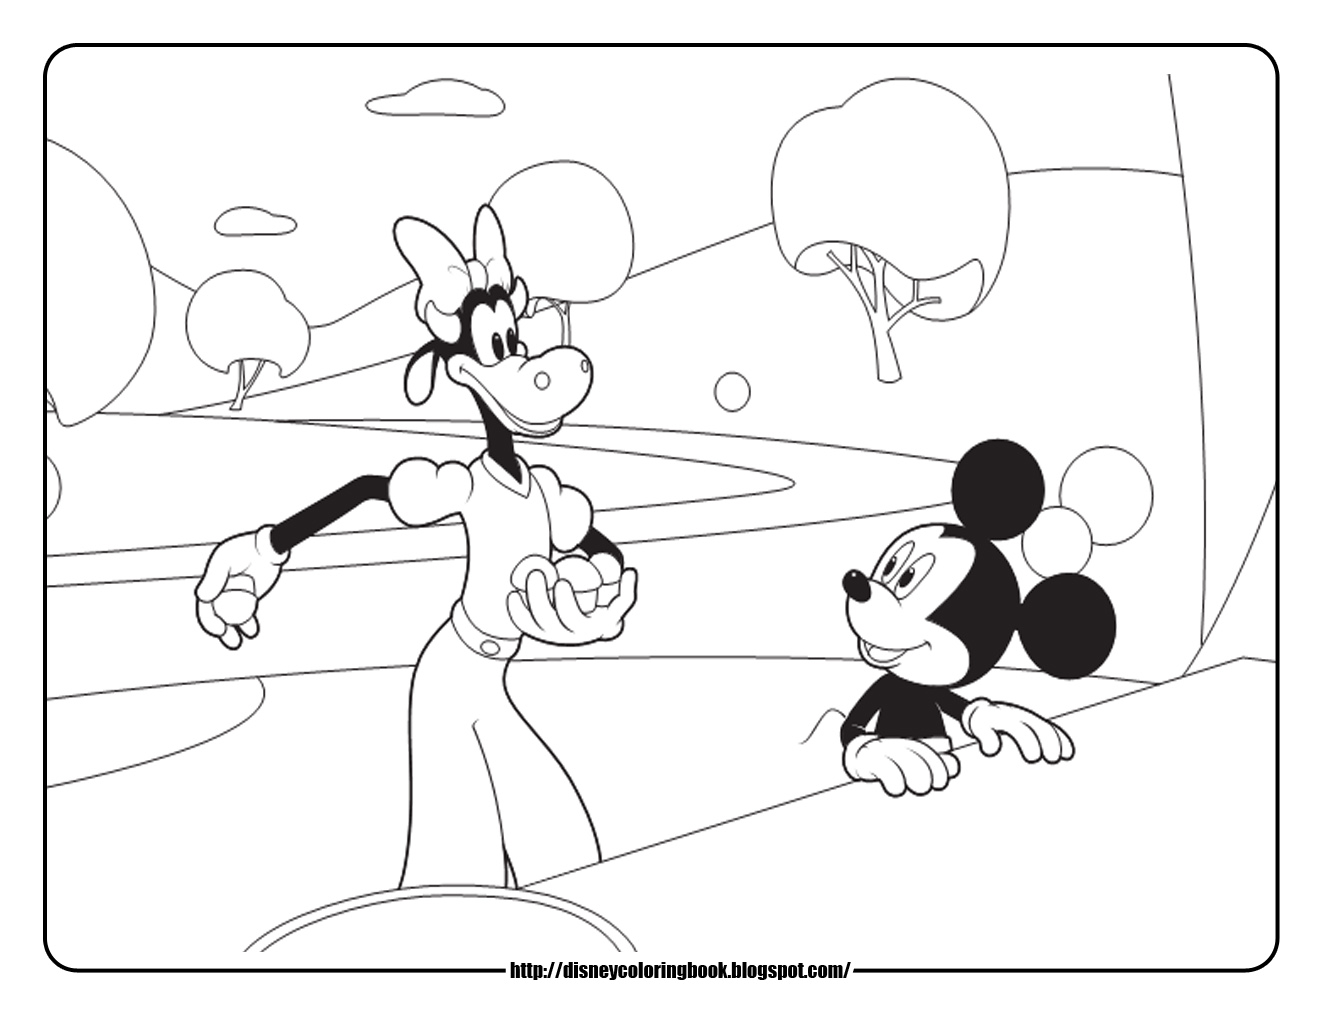 Disney Coloring Pages And Sheets For Kids August